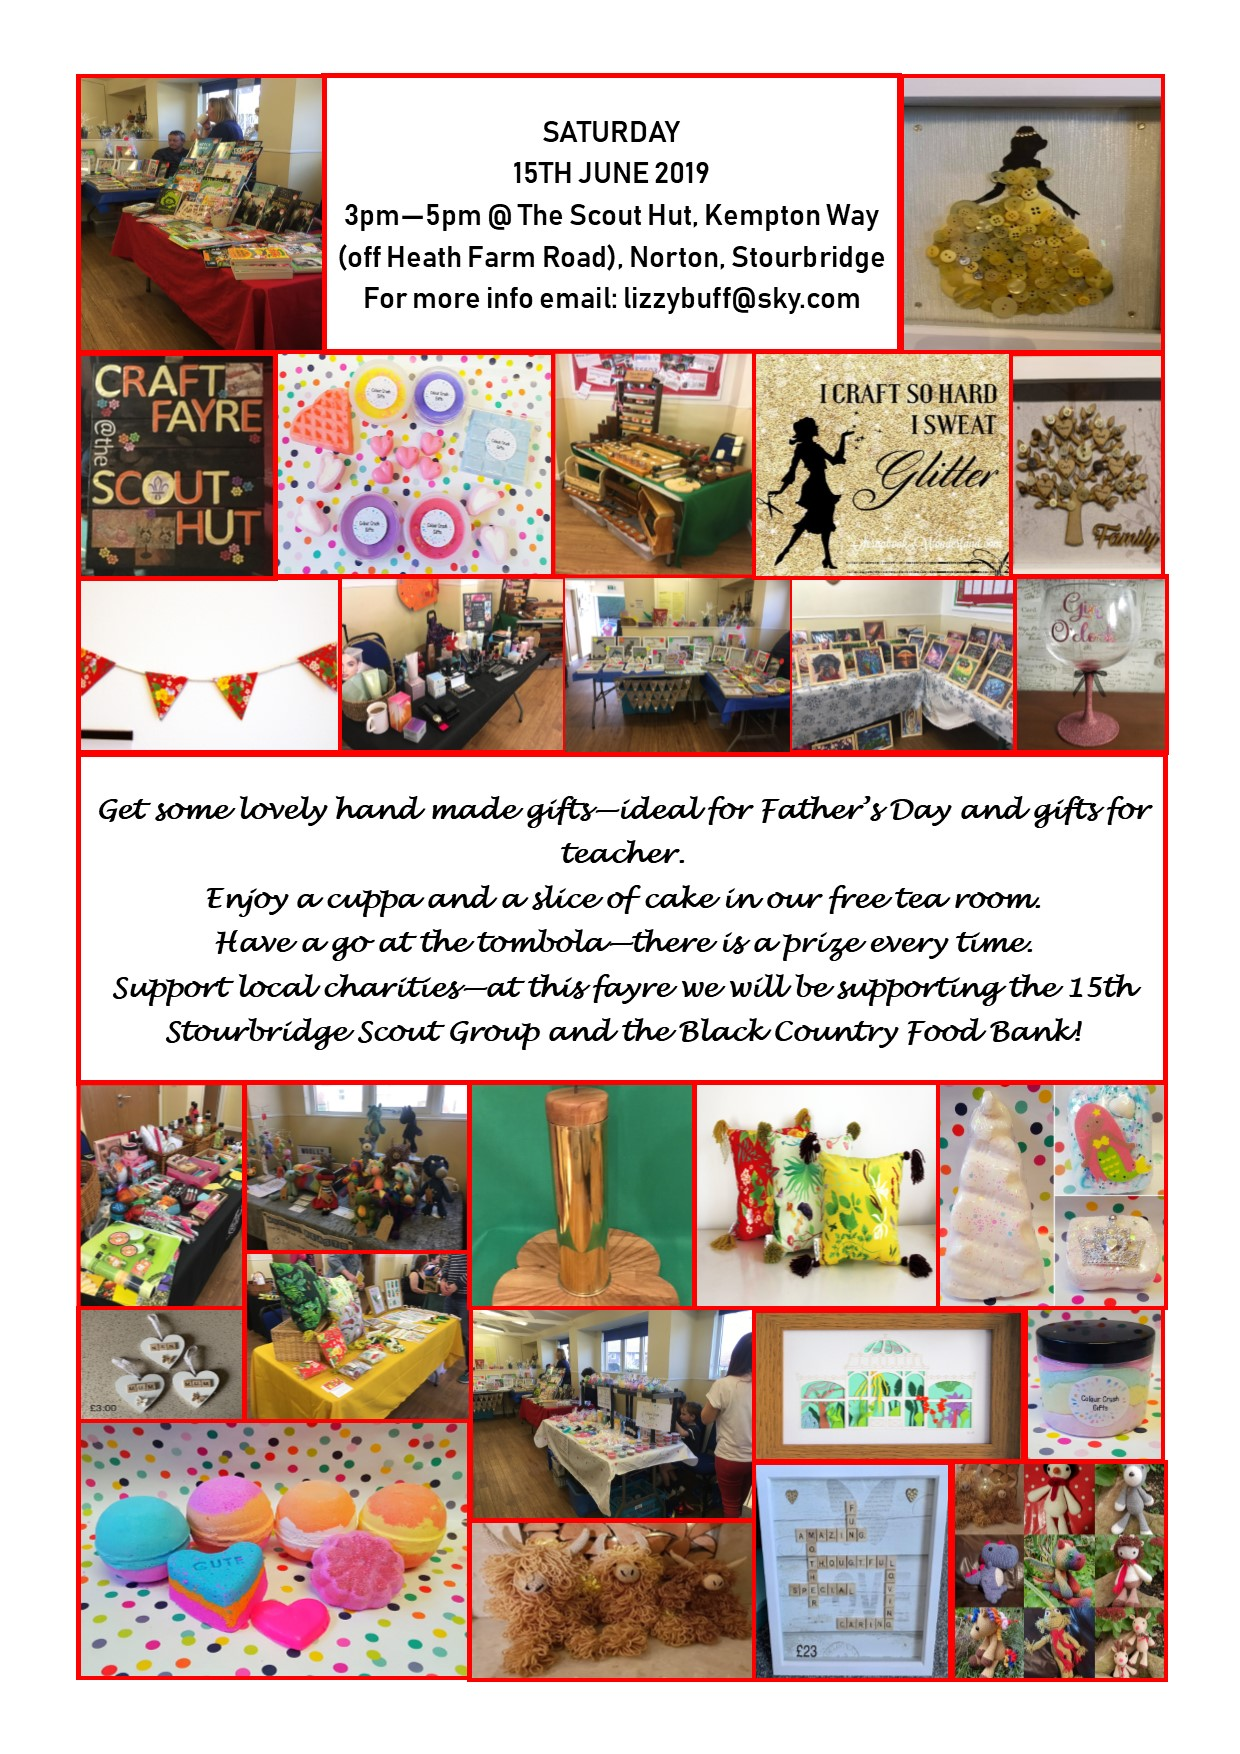 Norton Charity Craft Fayre